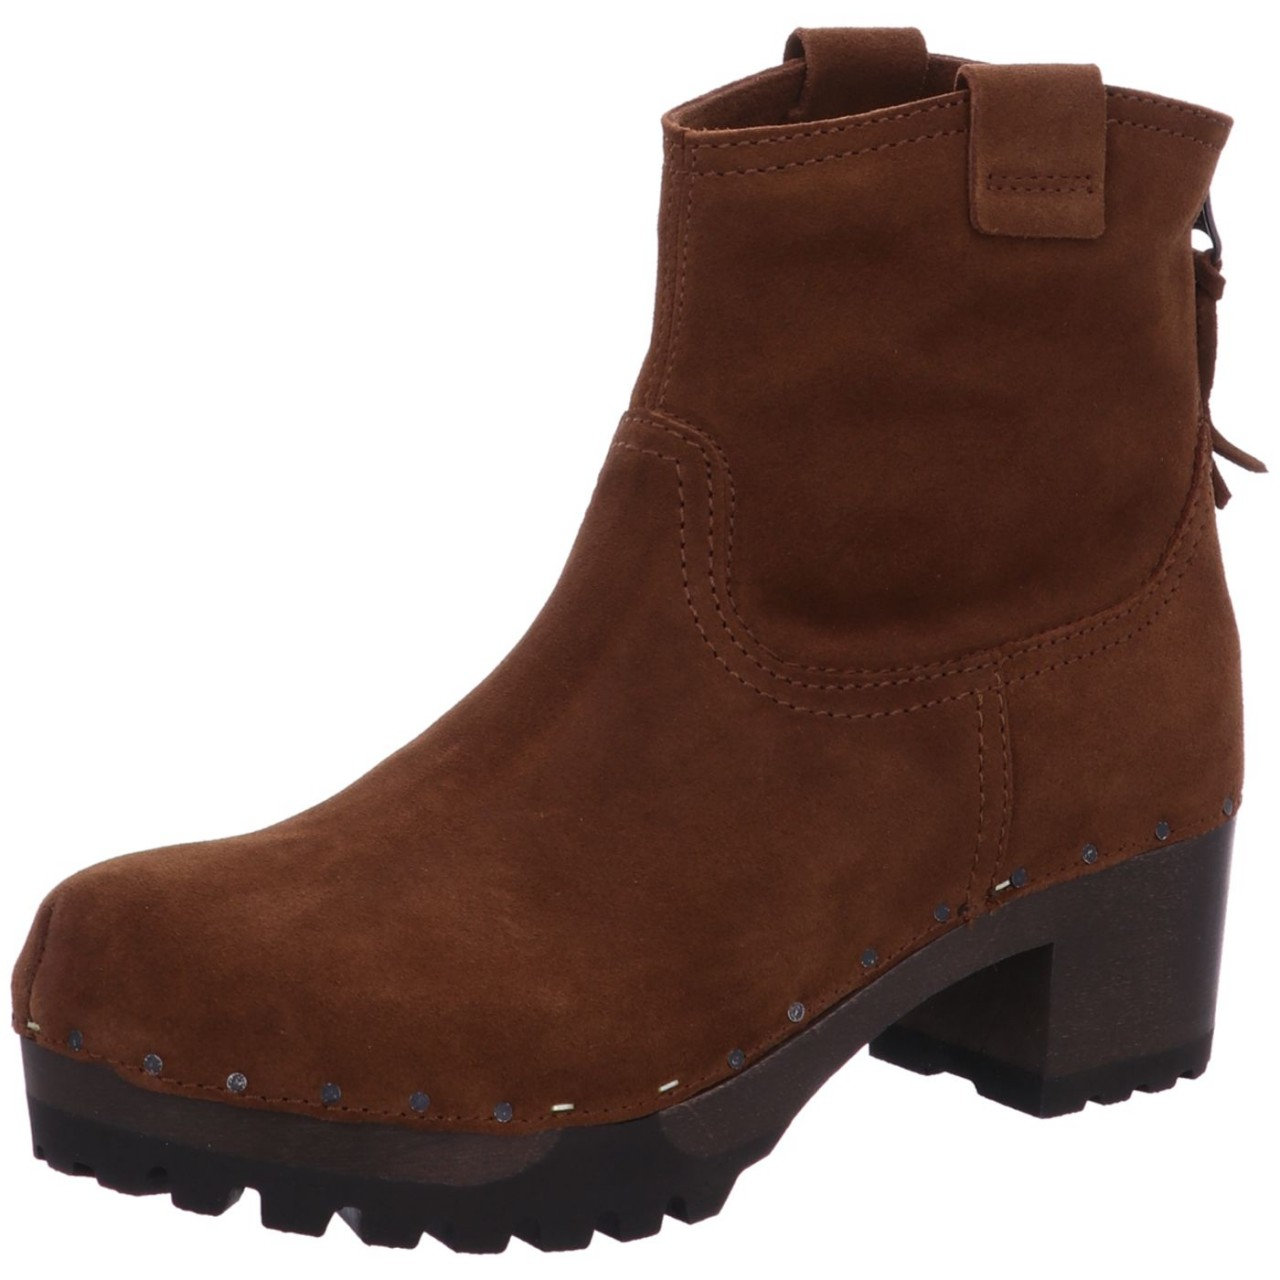 Softclox Boot Inken Braun 3354 brandy